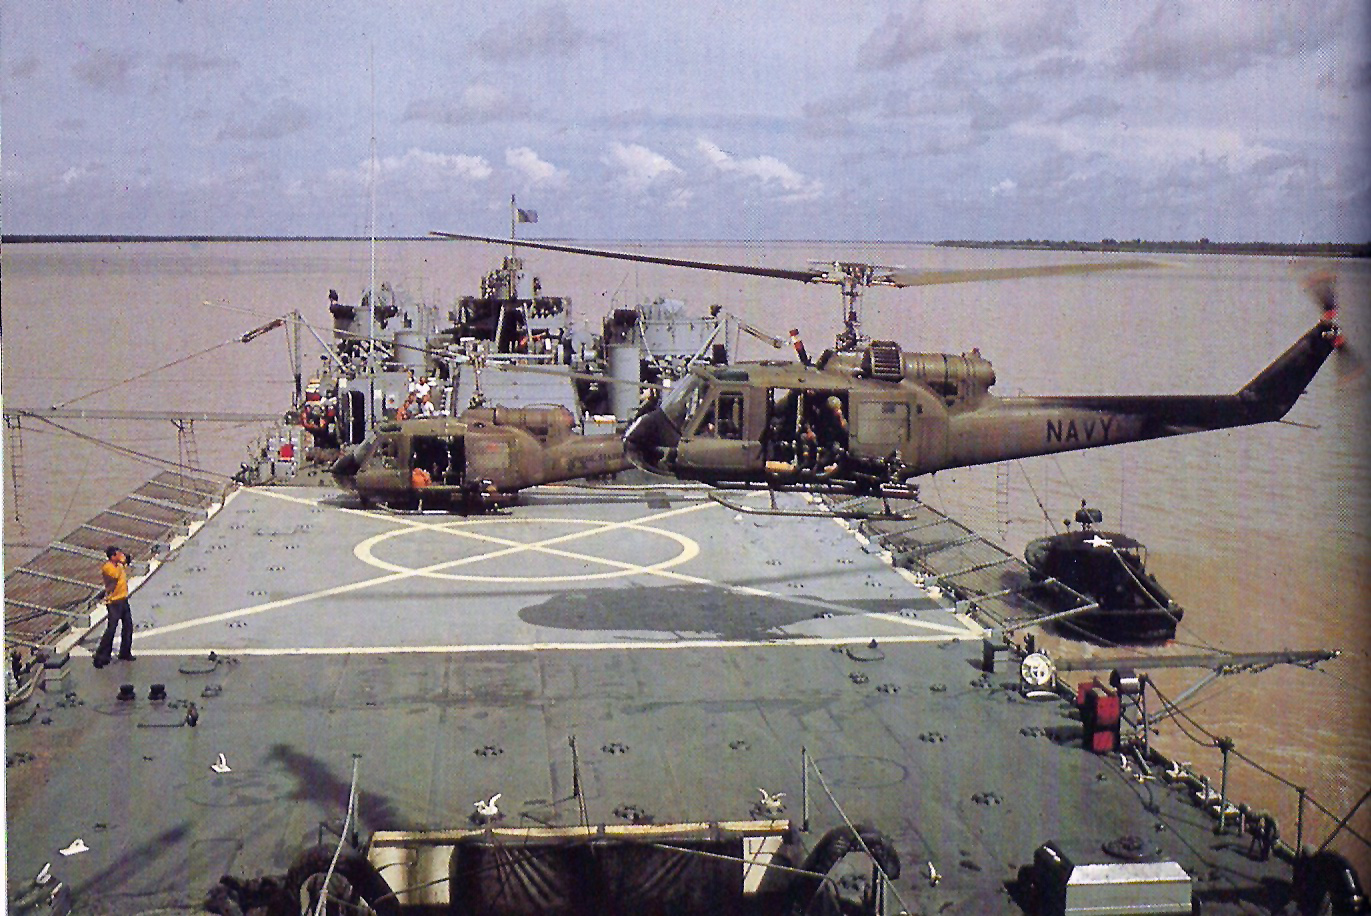 helicopters of the vietnam war with File Uh 1e Hal 4 Lst 821 Oct1967 on 10165968906 likewise No furthermore Bell UH 1D Iroquois MARINES 197136254 additionally Bell 204 uh 1c huey together with File UH 1E HAL 4 LST 821 Oct1967.